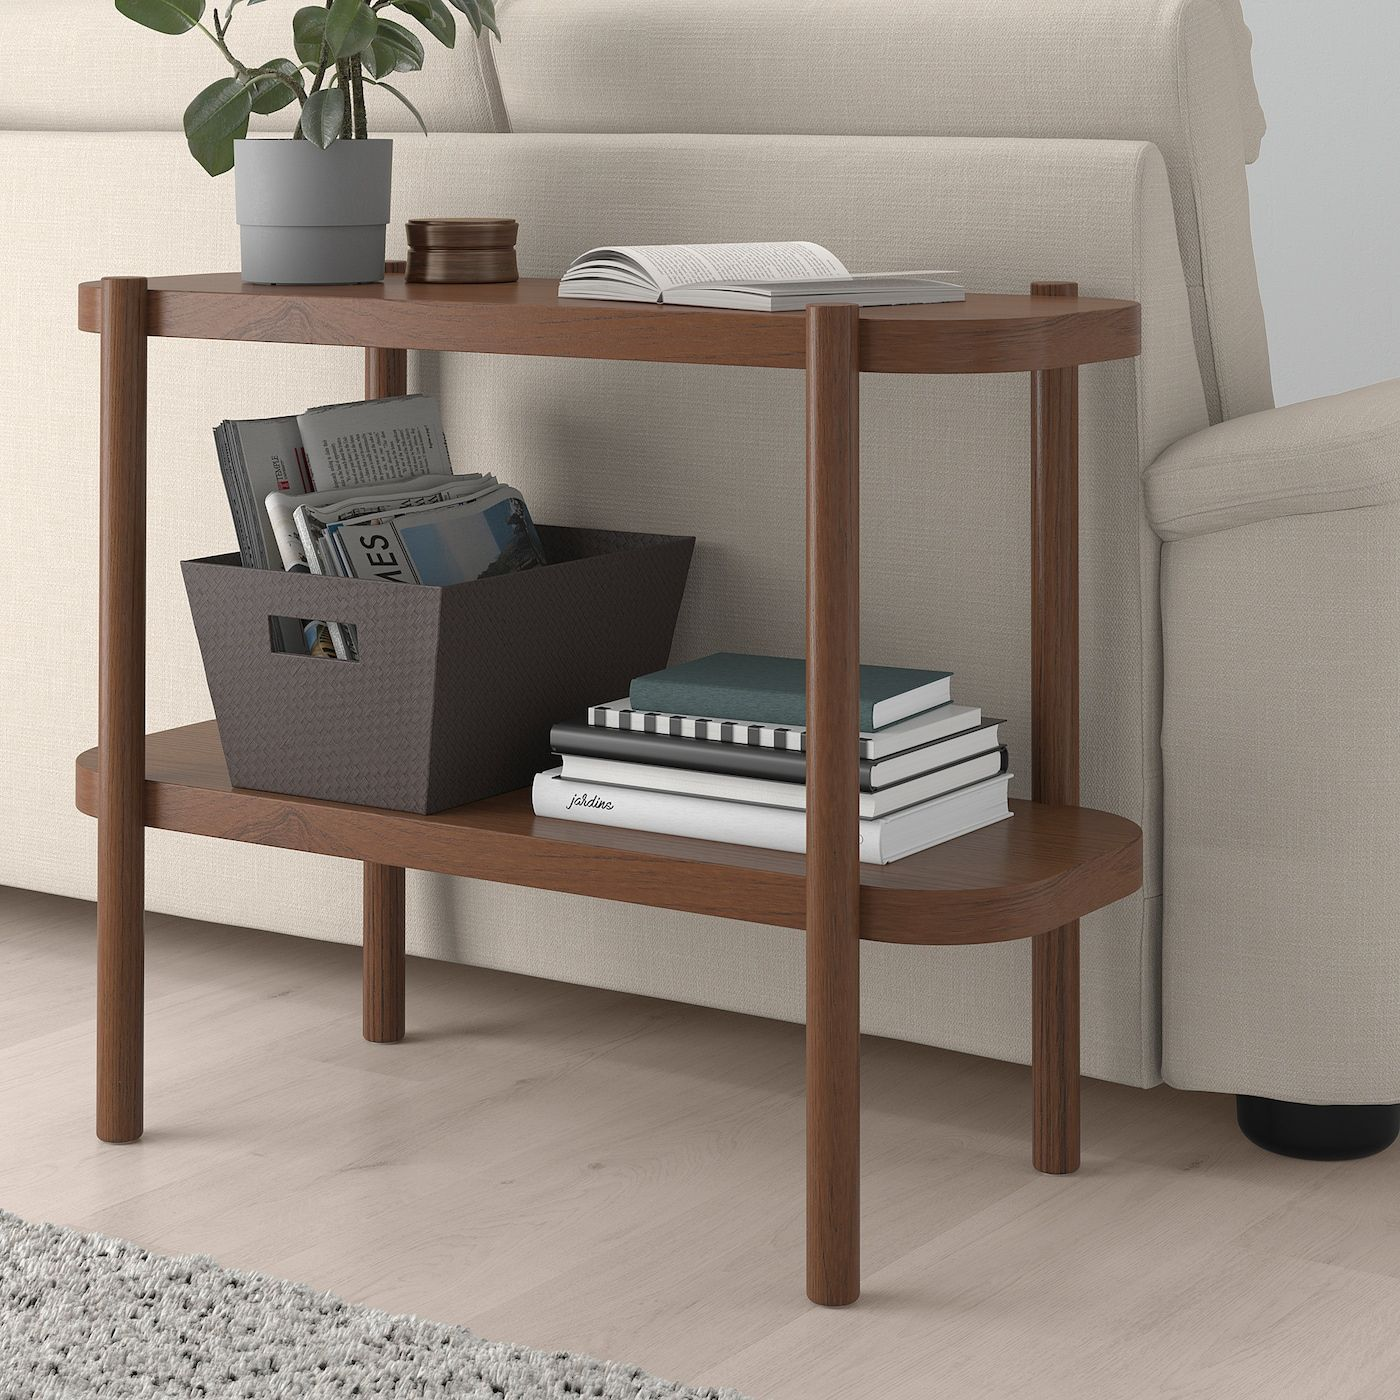 Listerby Console Table Brown 36 1 4x15x28 Ikea Console Table Bed Frame With Storage Solid Oak Table [ 1400 x 1400 Pixel ]